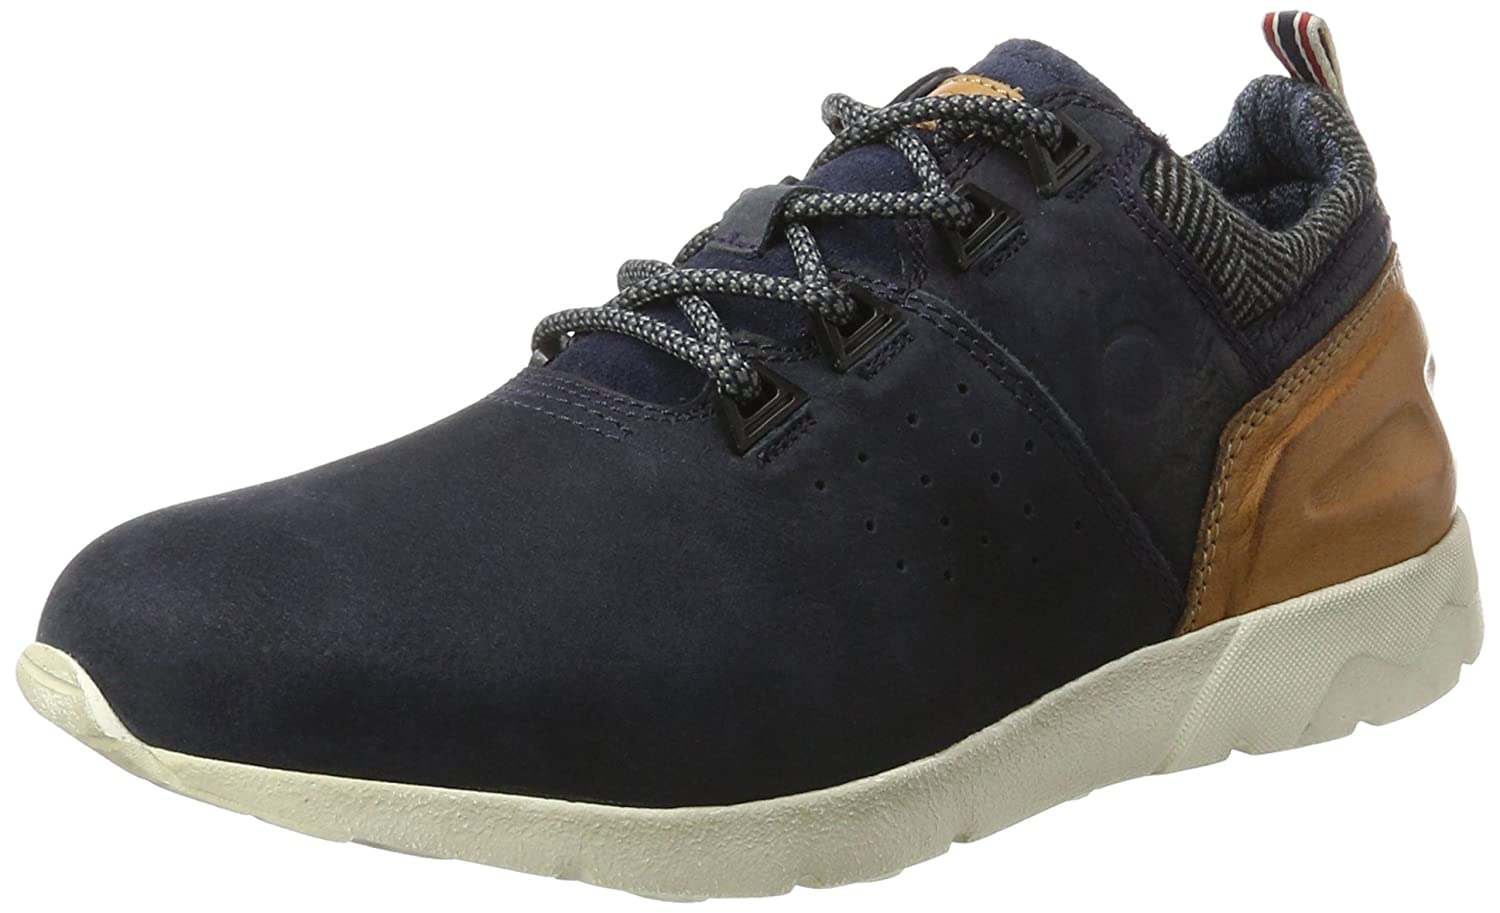 Mens 321342012510 Low-Top Sneakers, Dark Blue/Cognac Bugatti